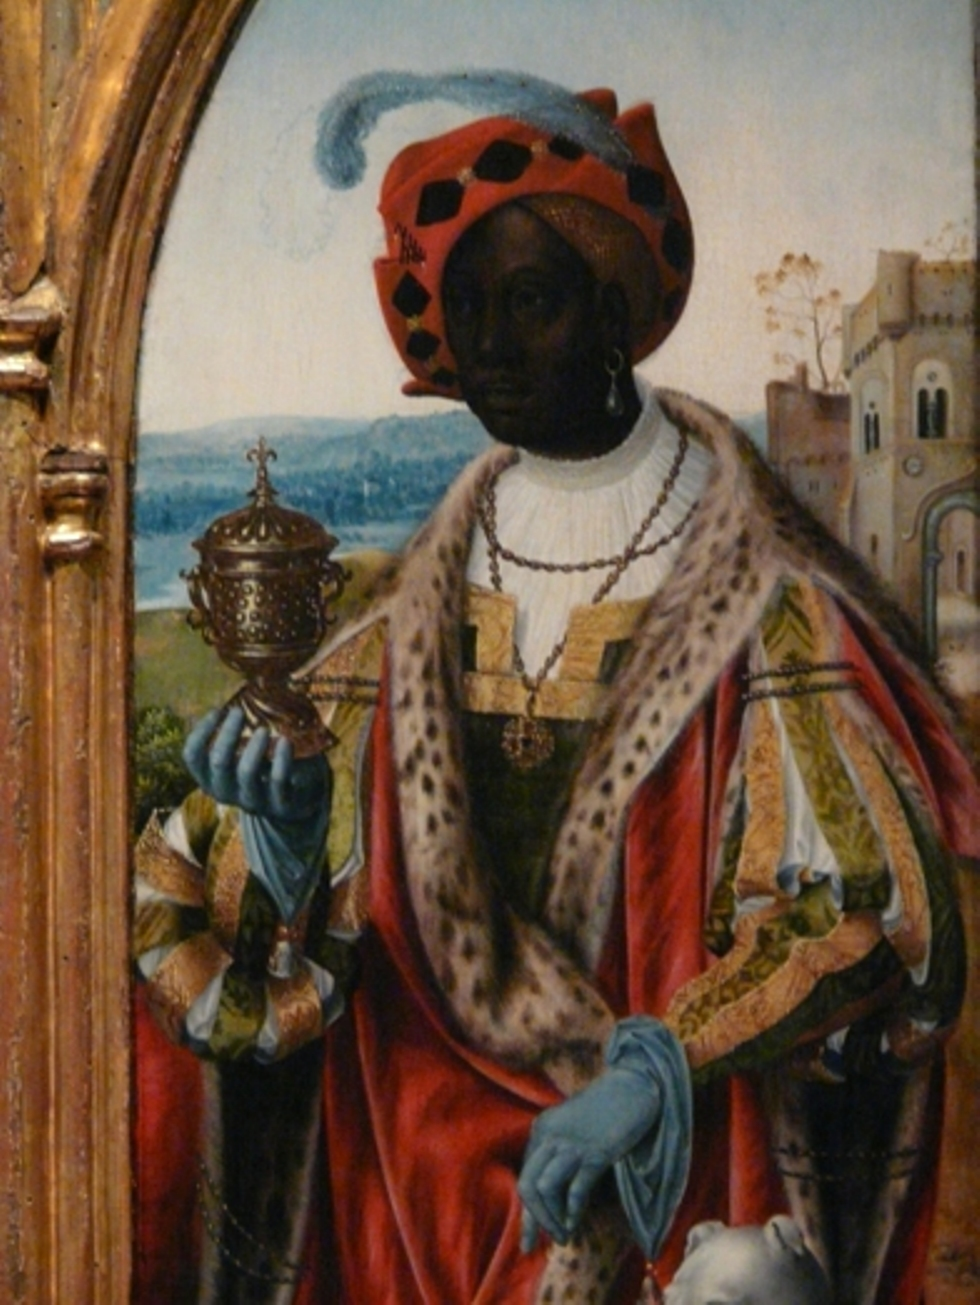 A-FLEMISH-PAINTING-OF-THE-WISE-AFRICAN-KING-IN-THE-EUROPEAN-RENAISSANCE.-PHOTO-BY-RUNOKO-RASHIDI-1.jpg